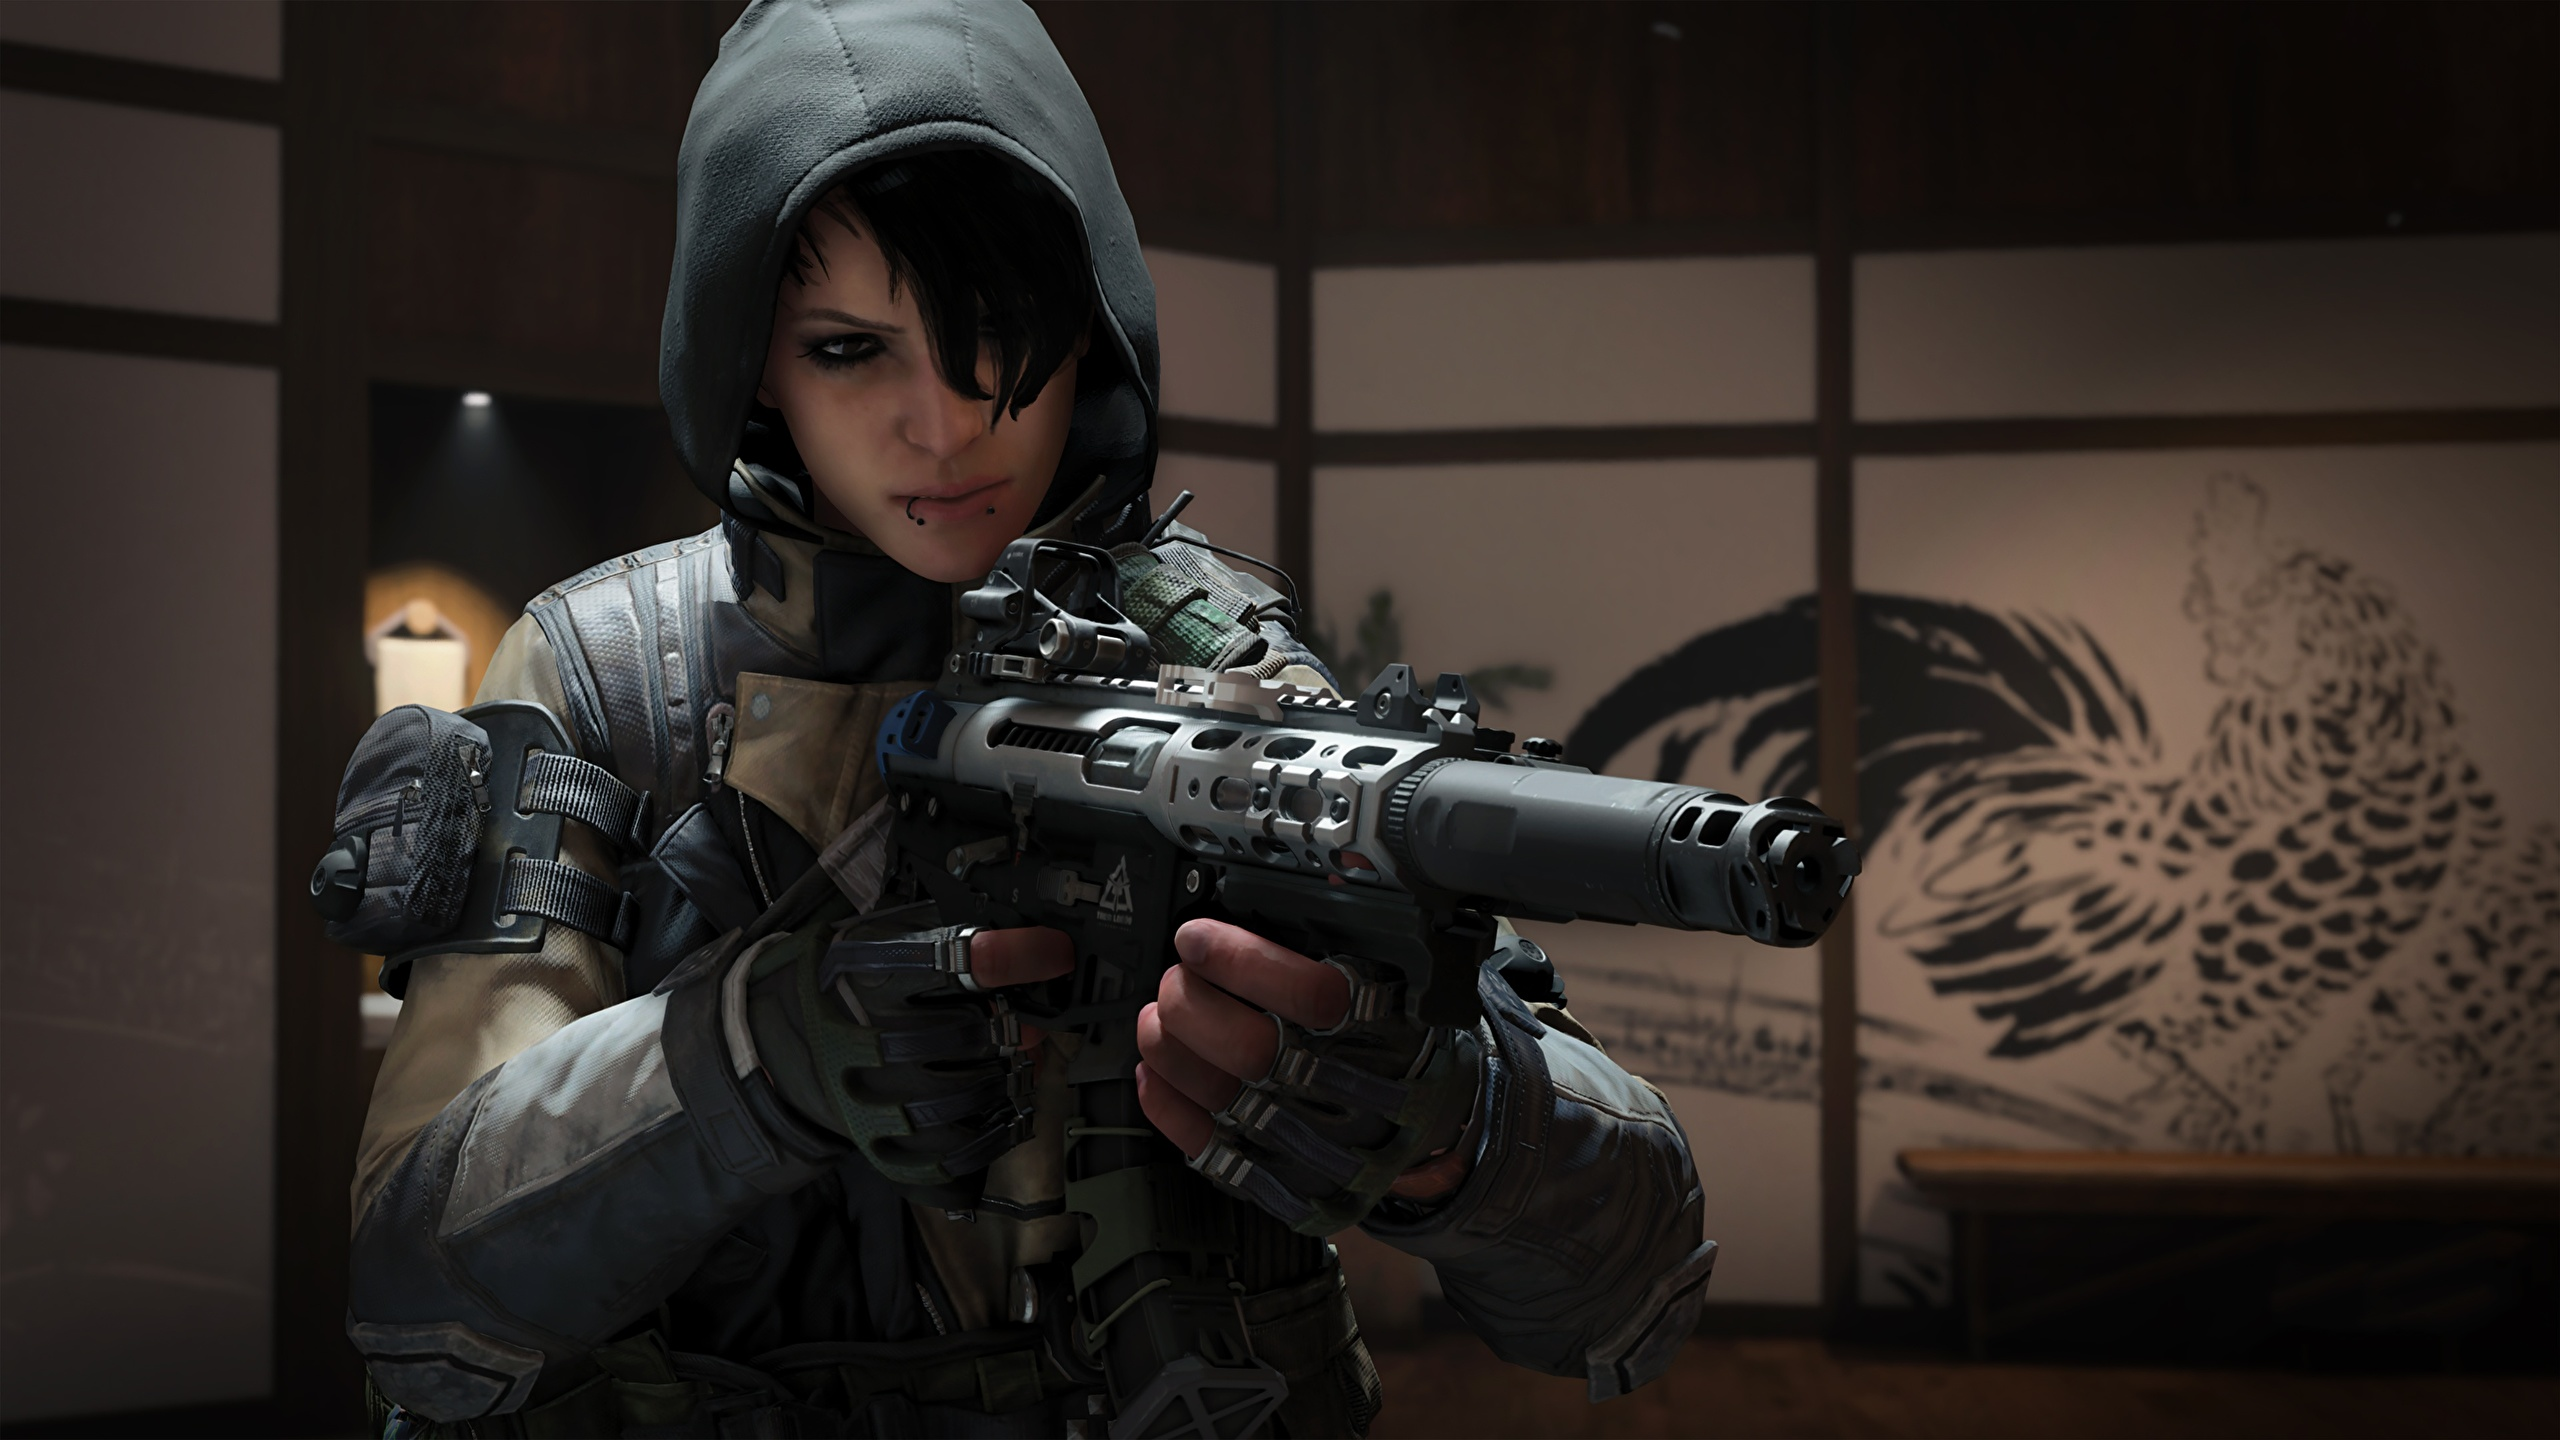 Wallpaper Call Of Duty Warrior Assault Rifle Black Ops 4 2560x1440